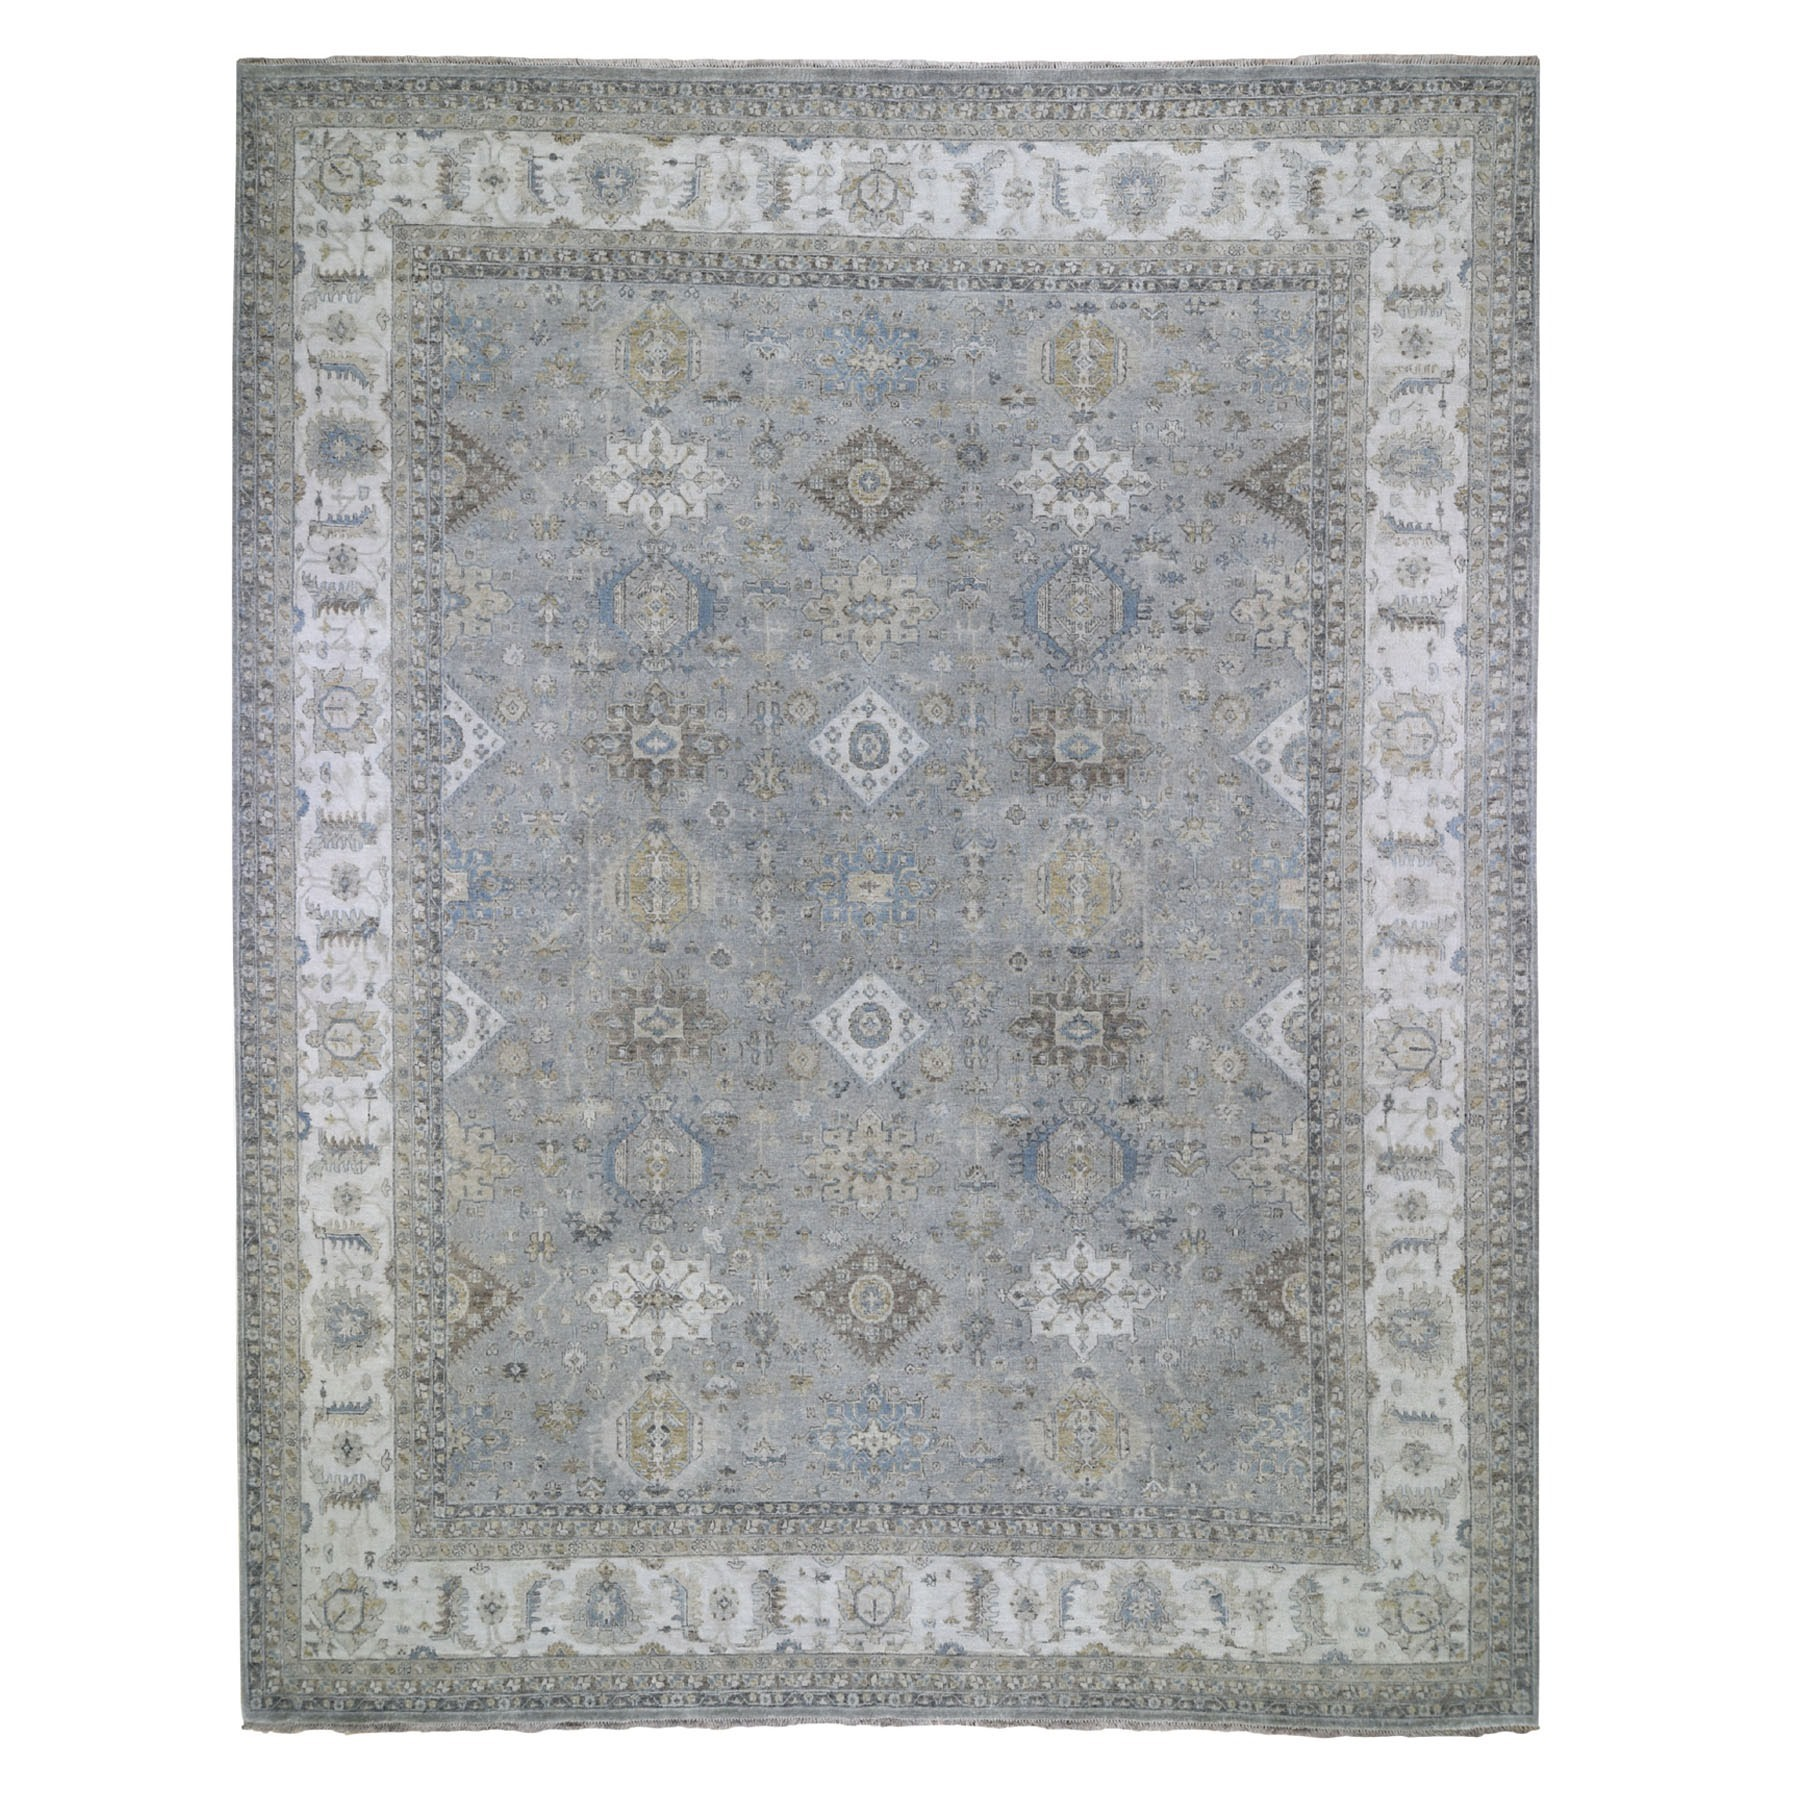 """11'9""""X14'9"""" Oversize Karajeh Design Pure Wool Gray Hand Knotted Oriental Rug moad7ecd"""